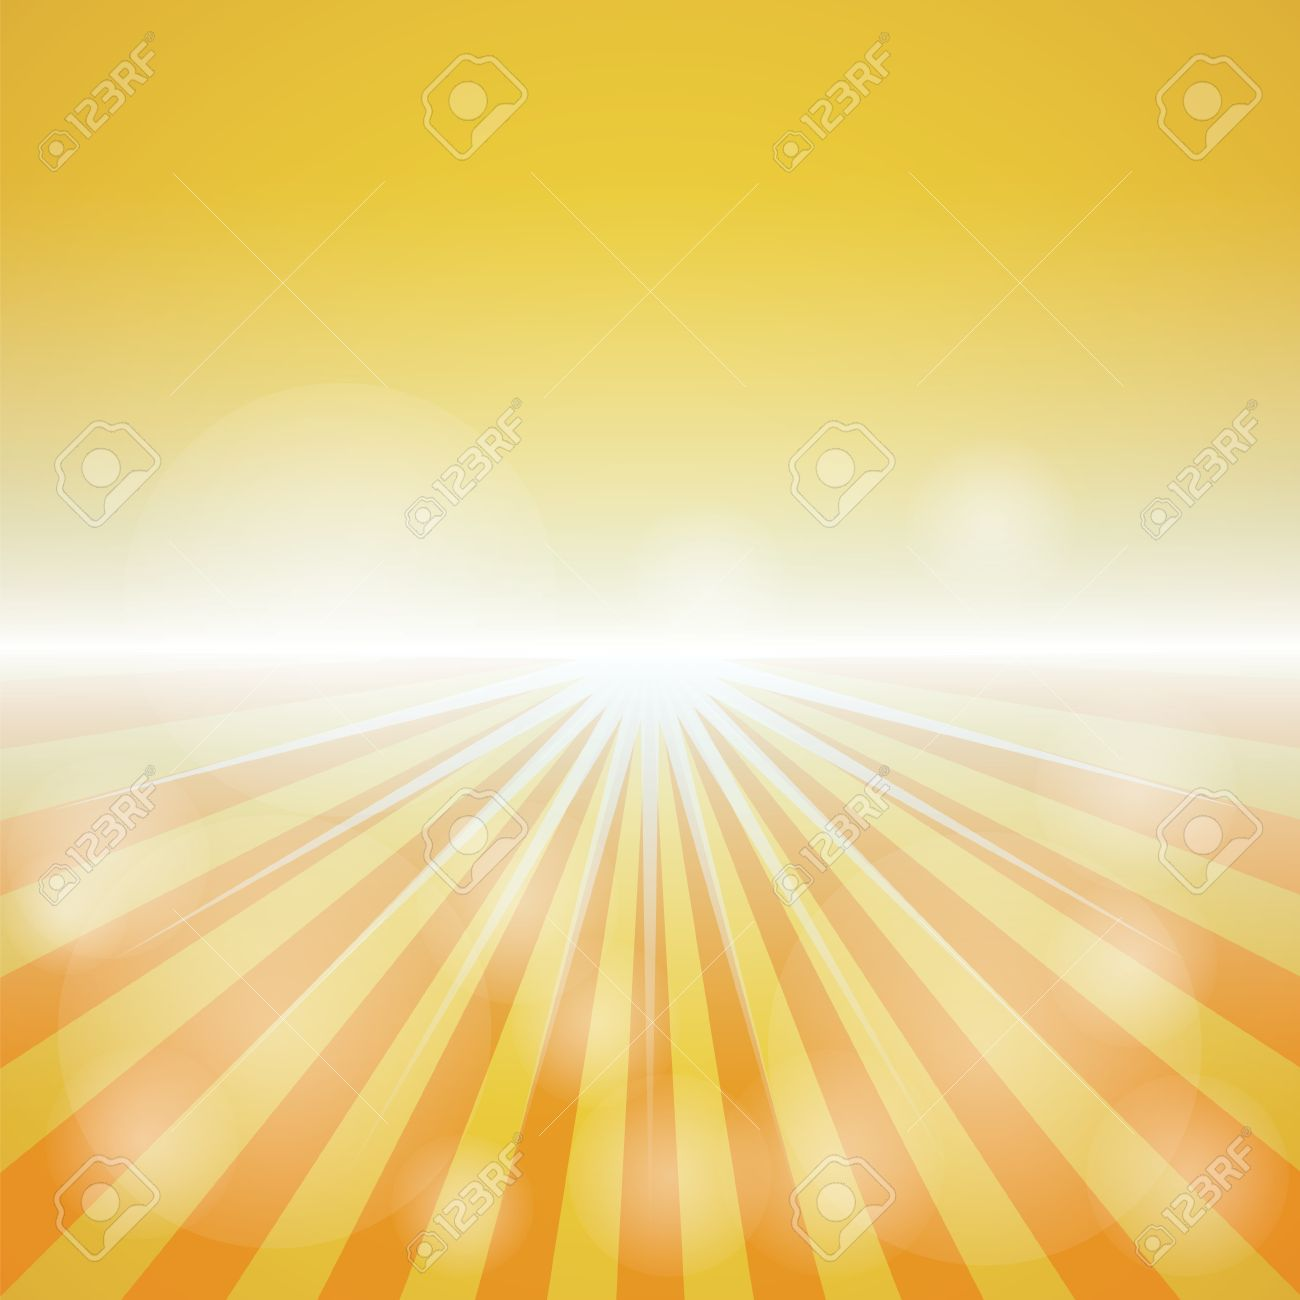 Empty Yellow red Color Background With Sunburst At The Lower 1300x1300